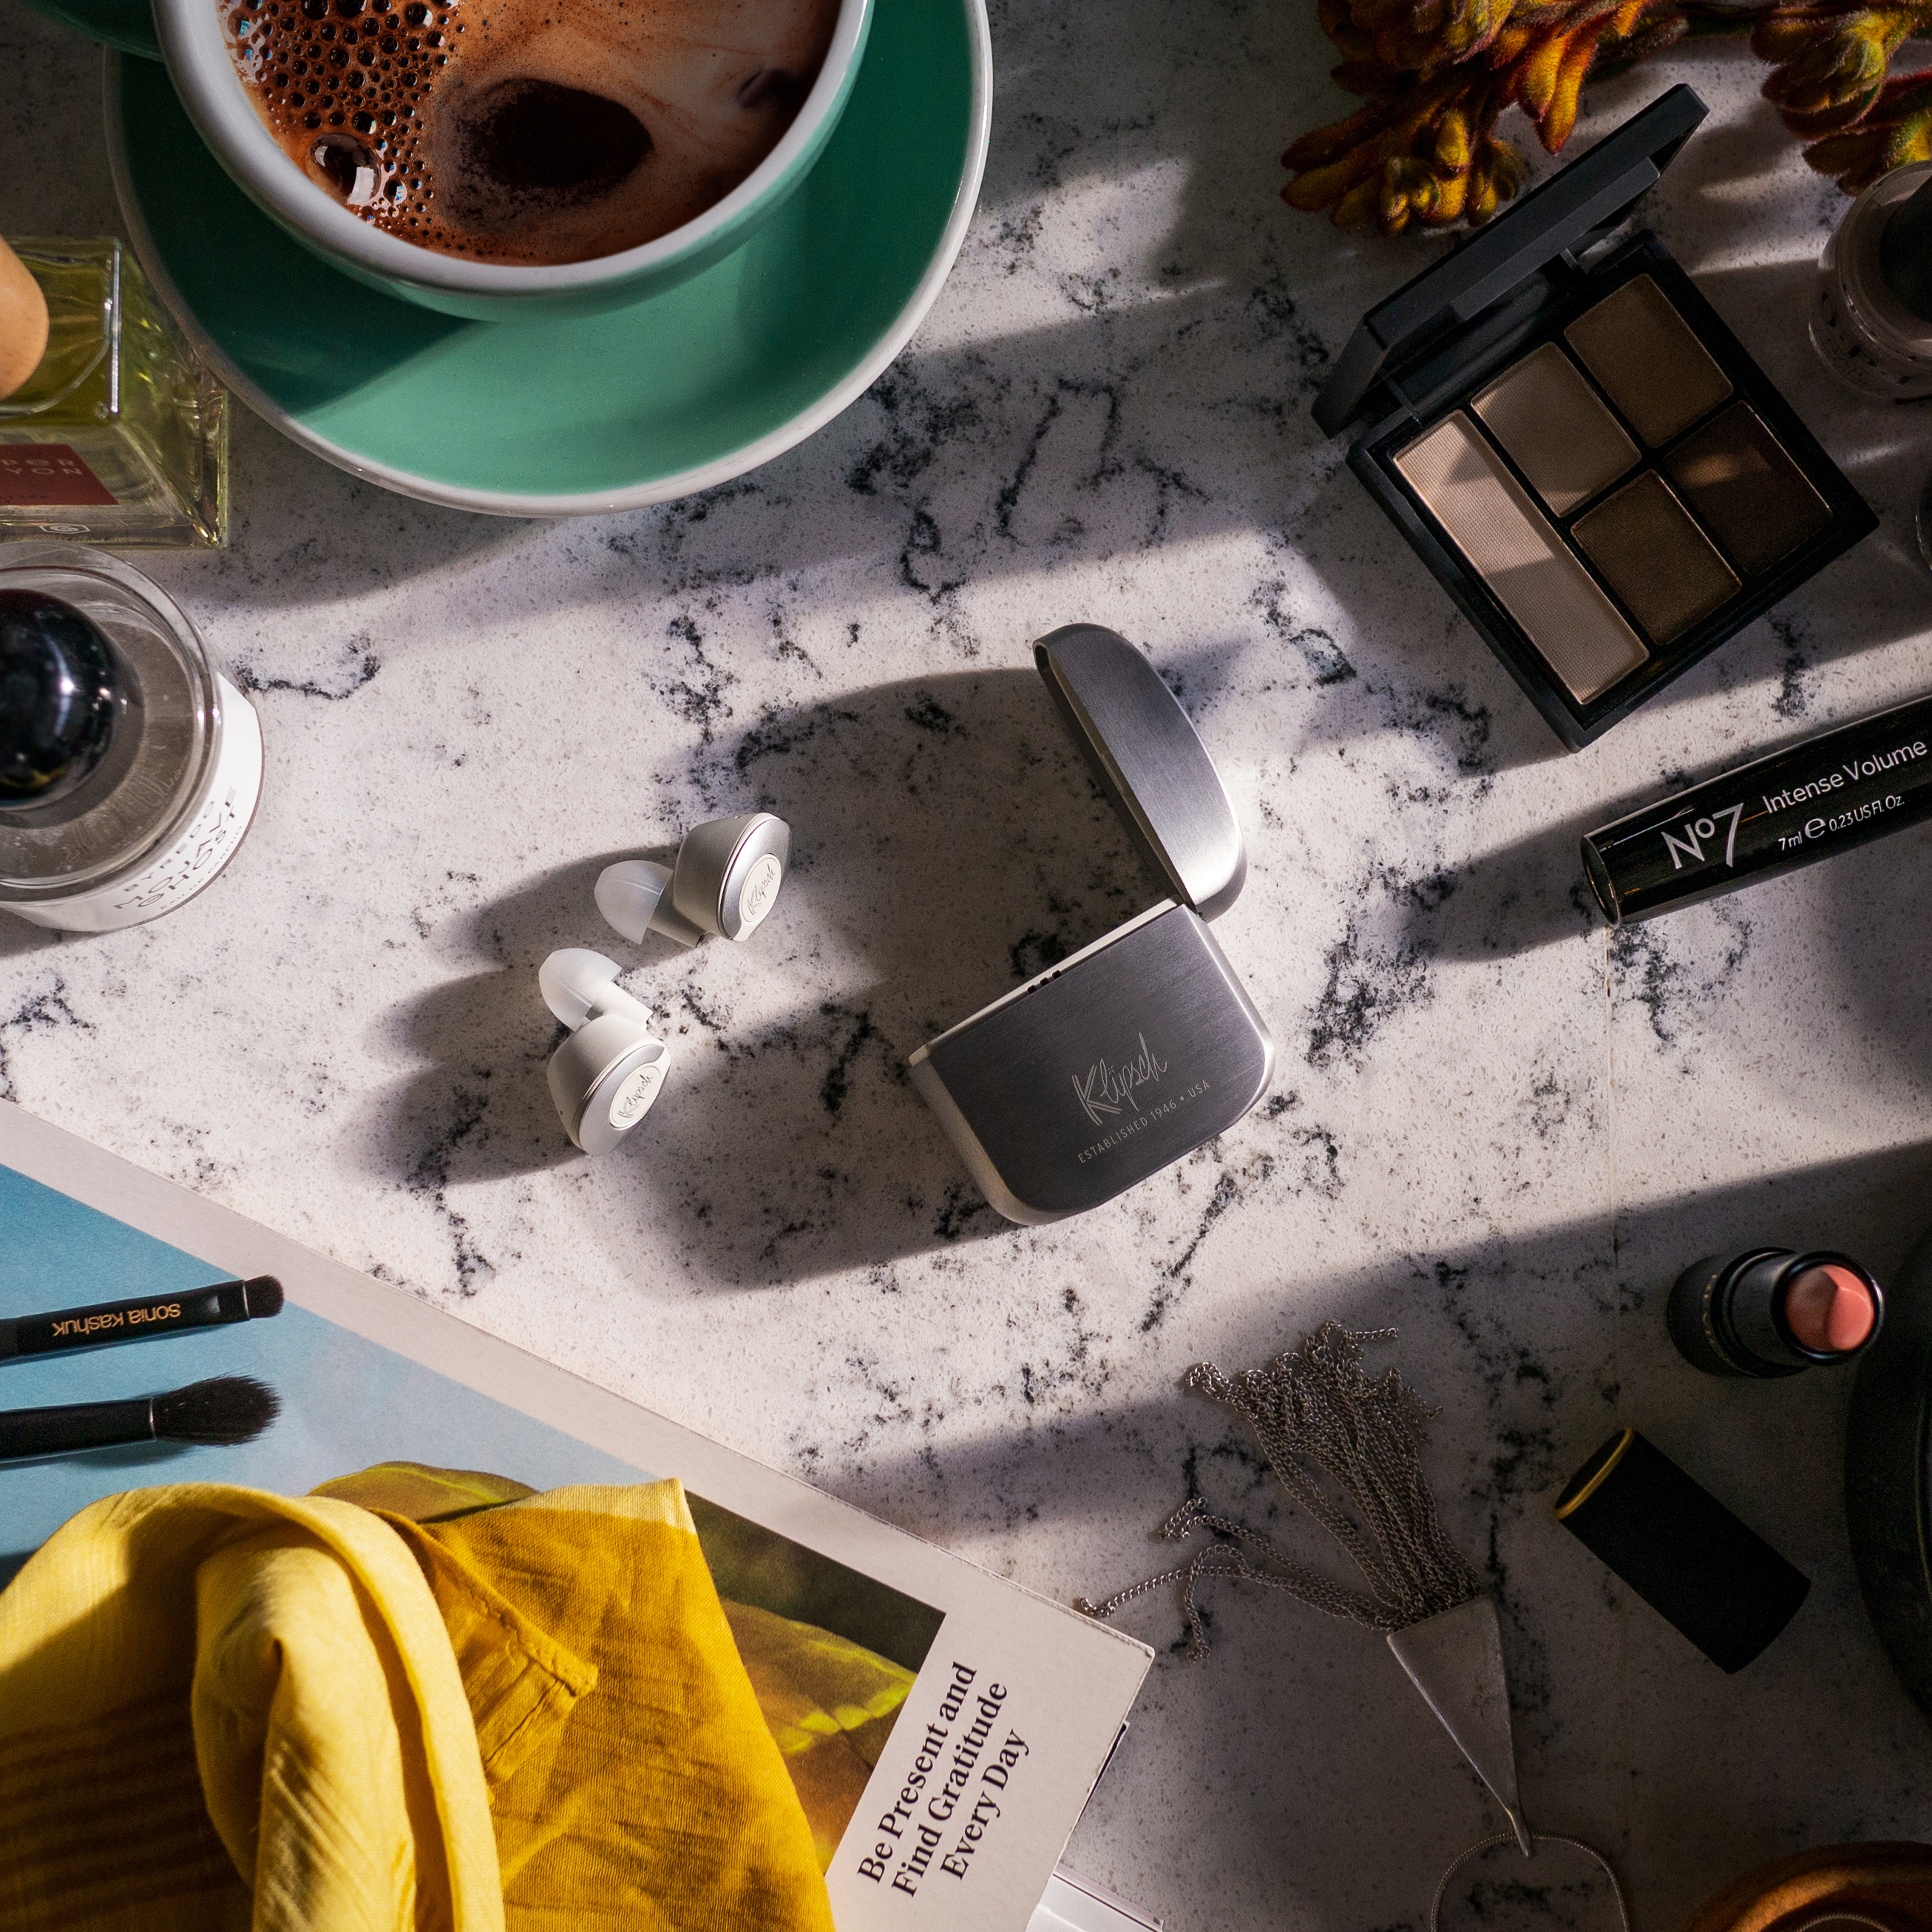 Flatlay of Klipsch T5 II True Wireless earbuds, coffee and some makeup on a marble table